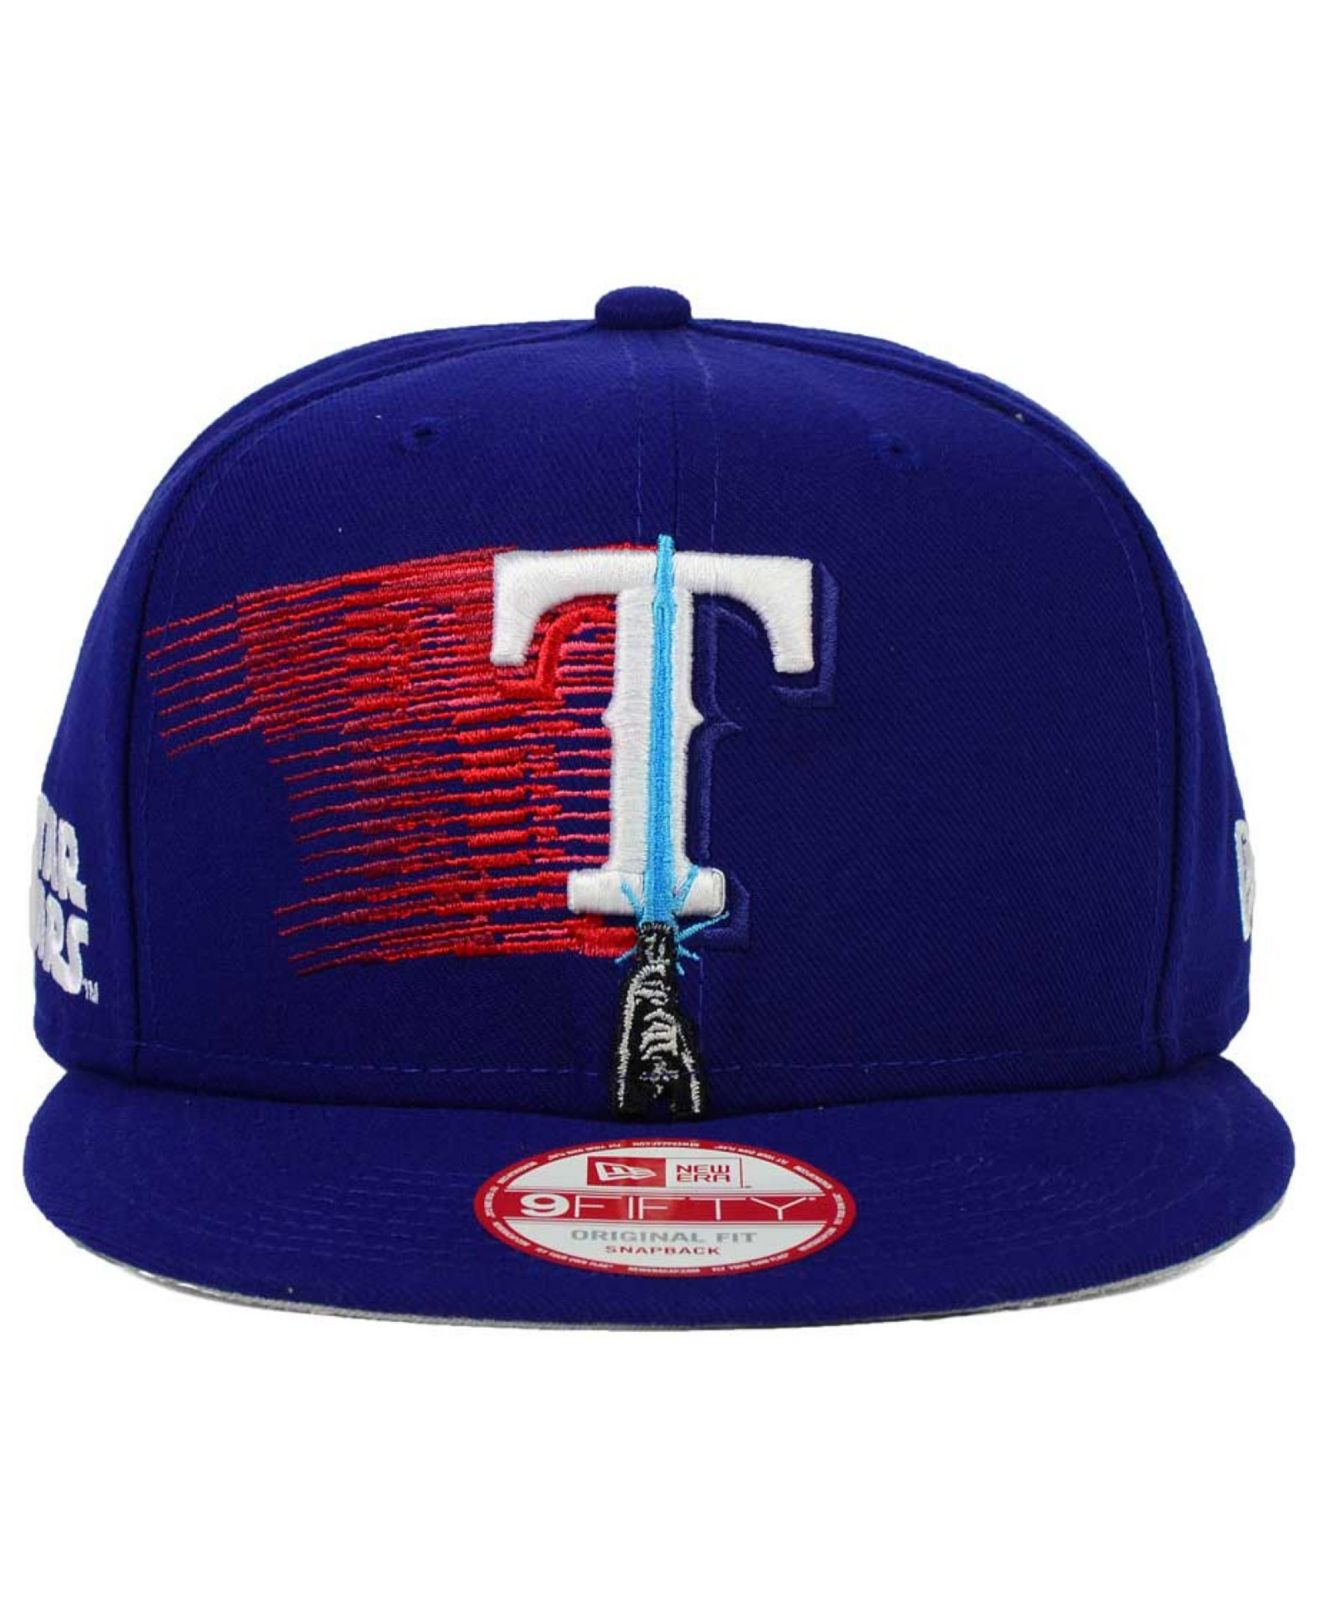 size 40 74788 bfa97 KTZ Texas Rangers Star Wars Logoswipe 9fifty Snapback Cap in Blue ...